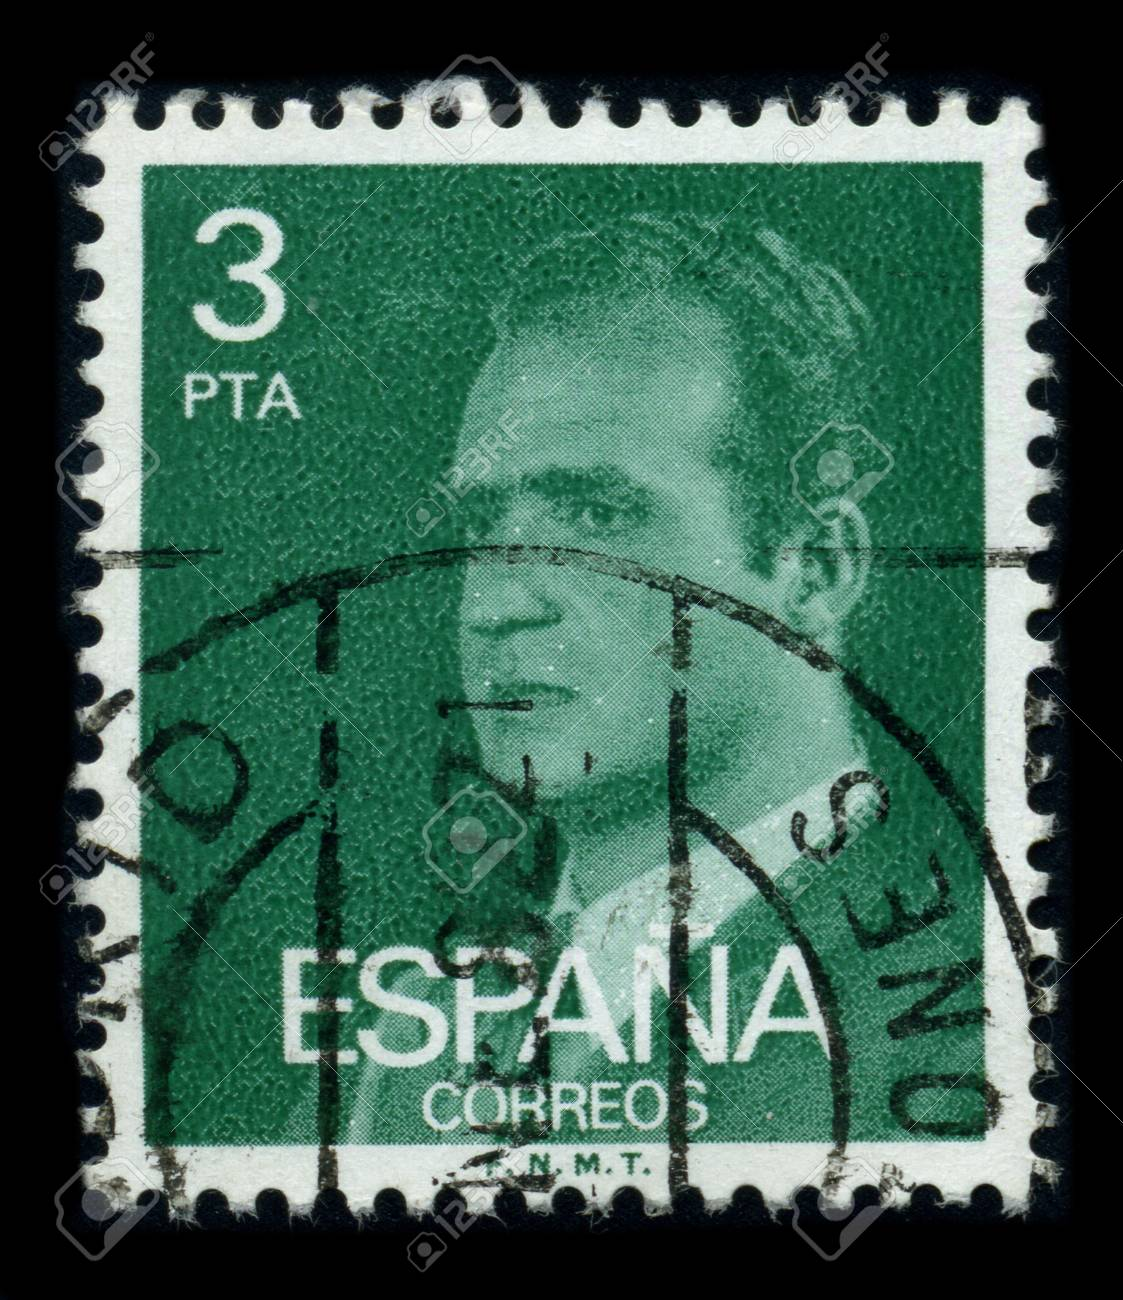 SPAIN - CIRCA 1990: A stamp printed in SPAIN shows image portrait Juan Carlos I (baptized as Juan Carlos Alfonso Victor Maria de Borbon y Borbon-Dos Sicilias; born in Rome, 5 January 1938) is the reigning King of Spain circa 1990. Stock Photo - 8194323